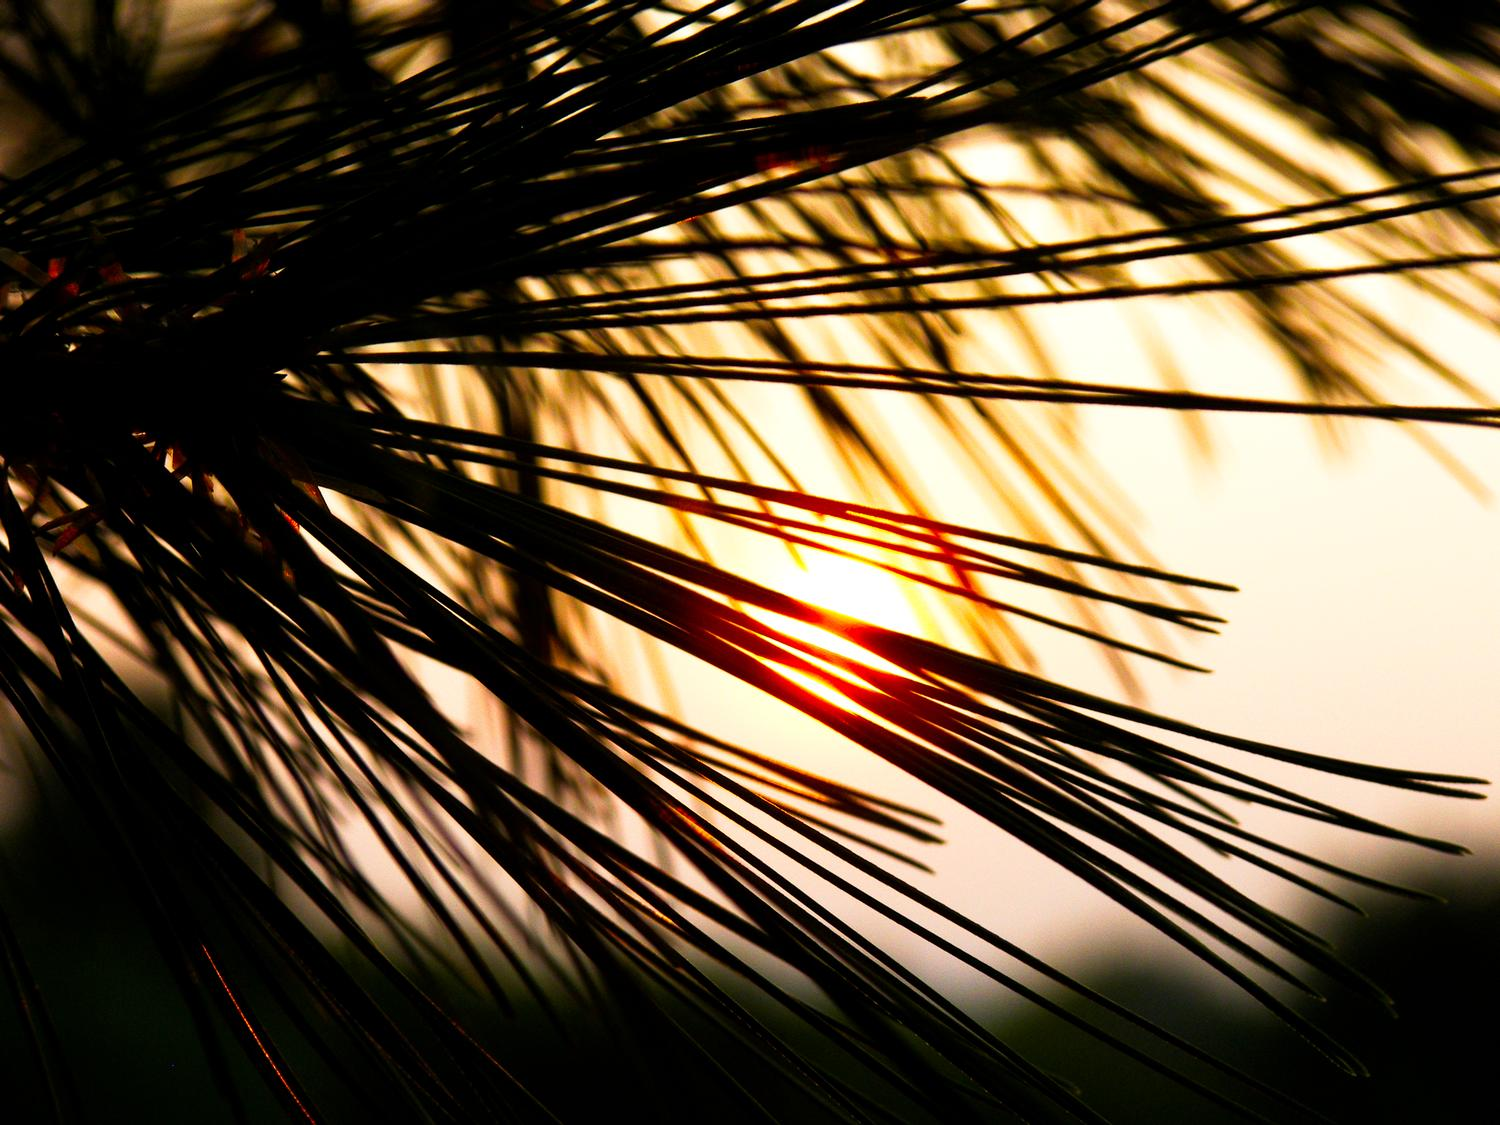 Sunset with pine needles - - Sunset with pine needles - Kodak P880 - Tony Karp, design, art, photography, techno-impressionist, techno-impressionism, aerial photography , drone , drones , dji , mavic pro , video , 3D printing - Books -